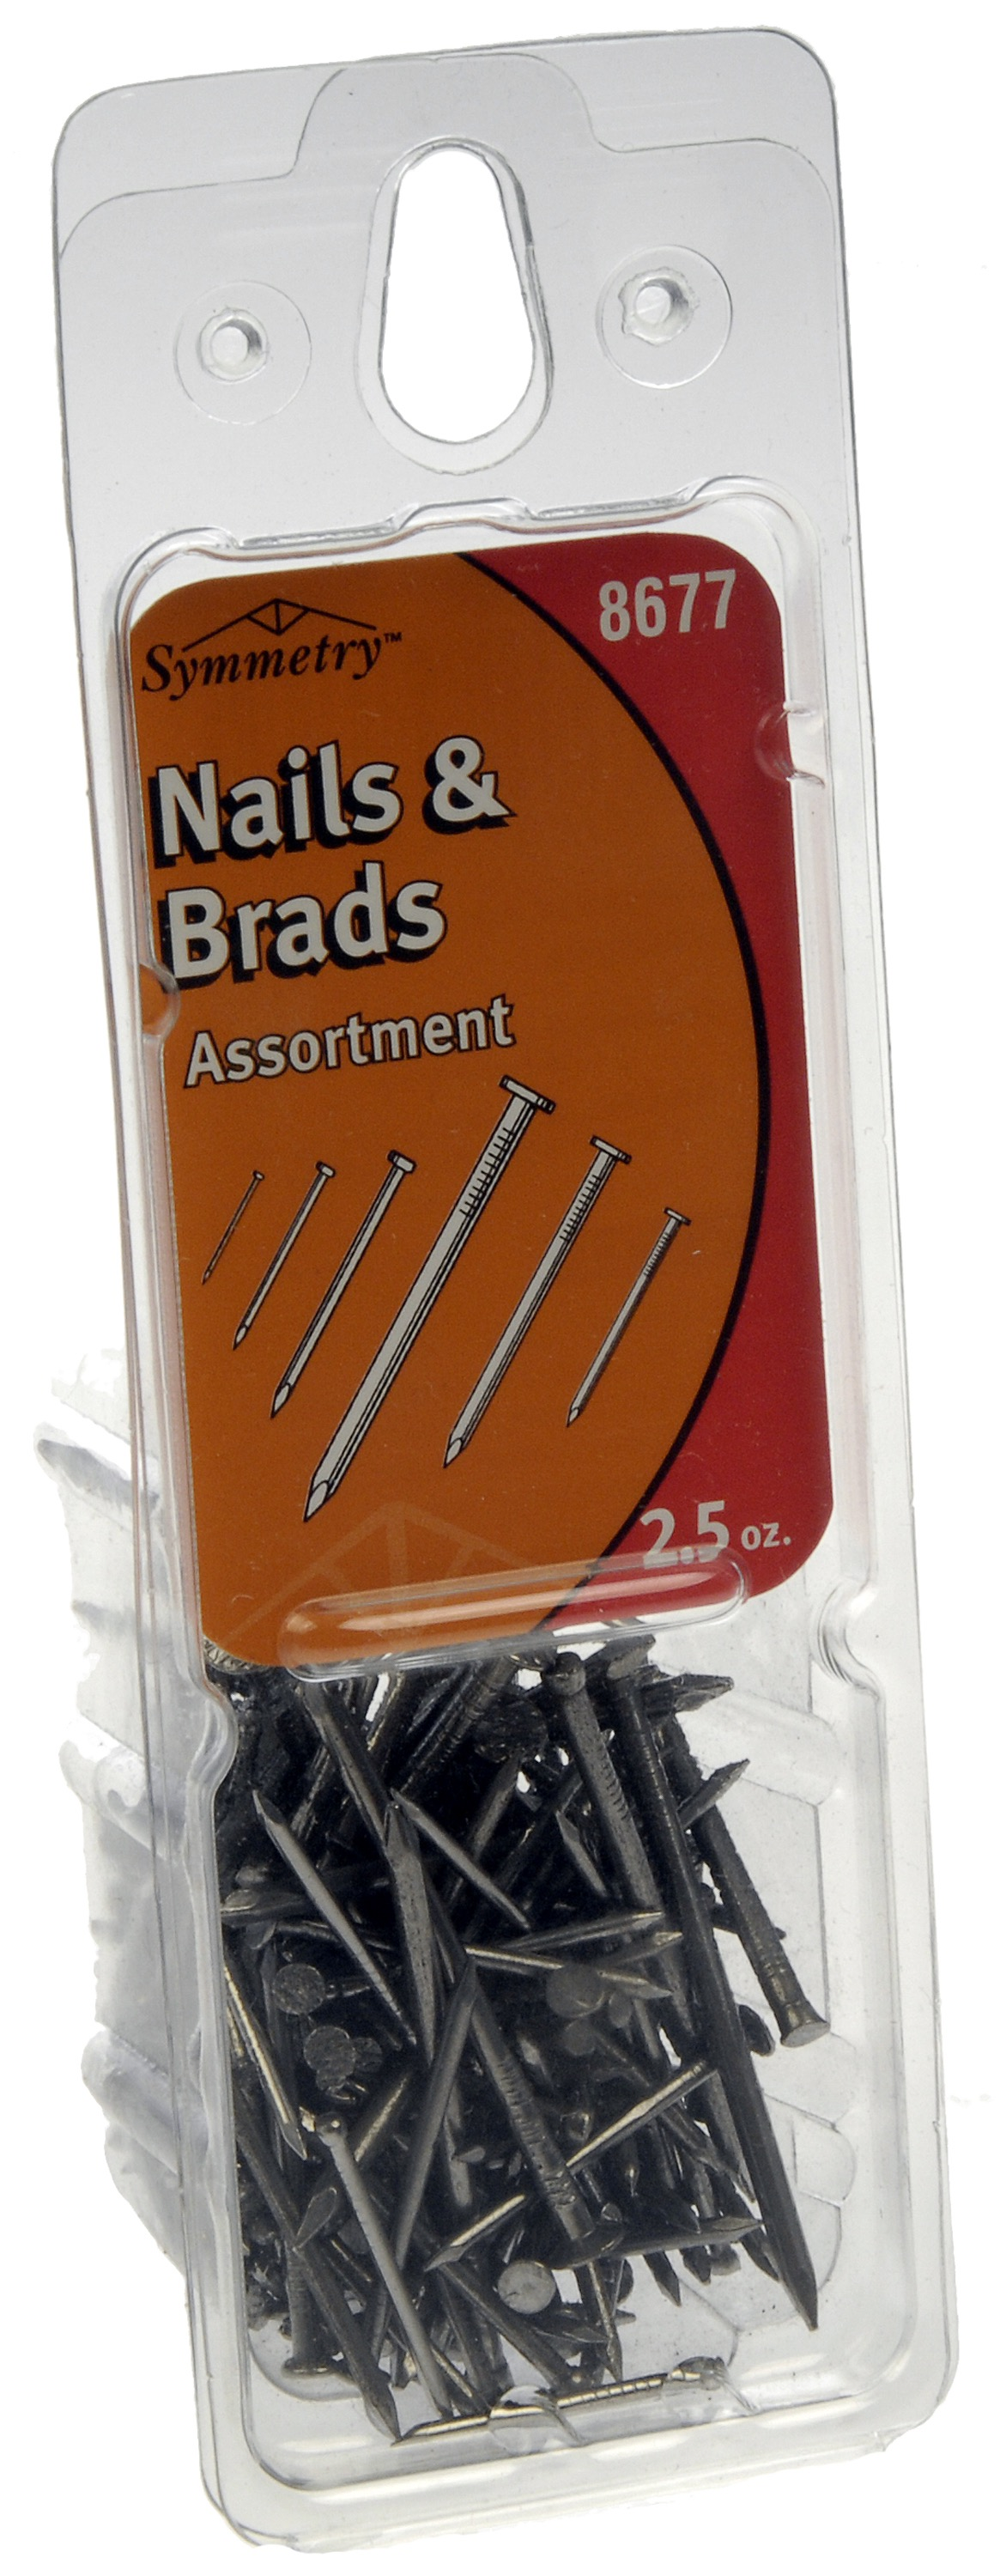 Nail & Brad Assortment